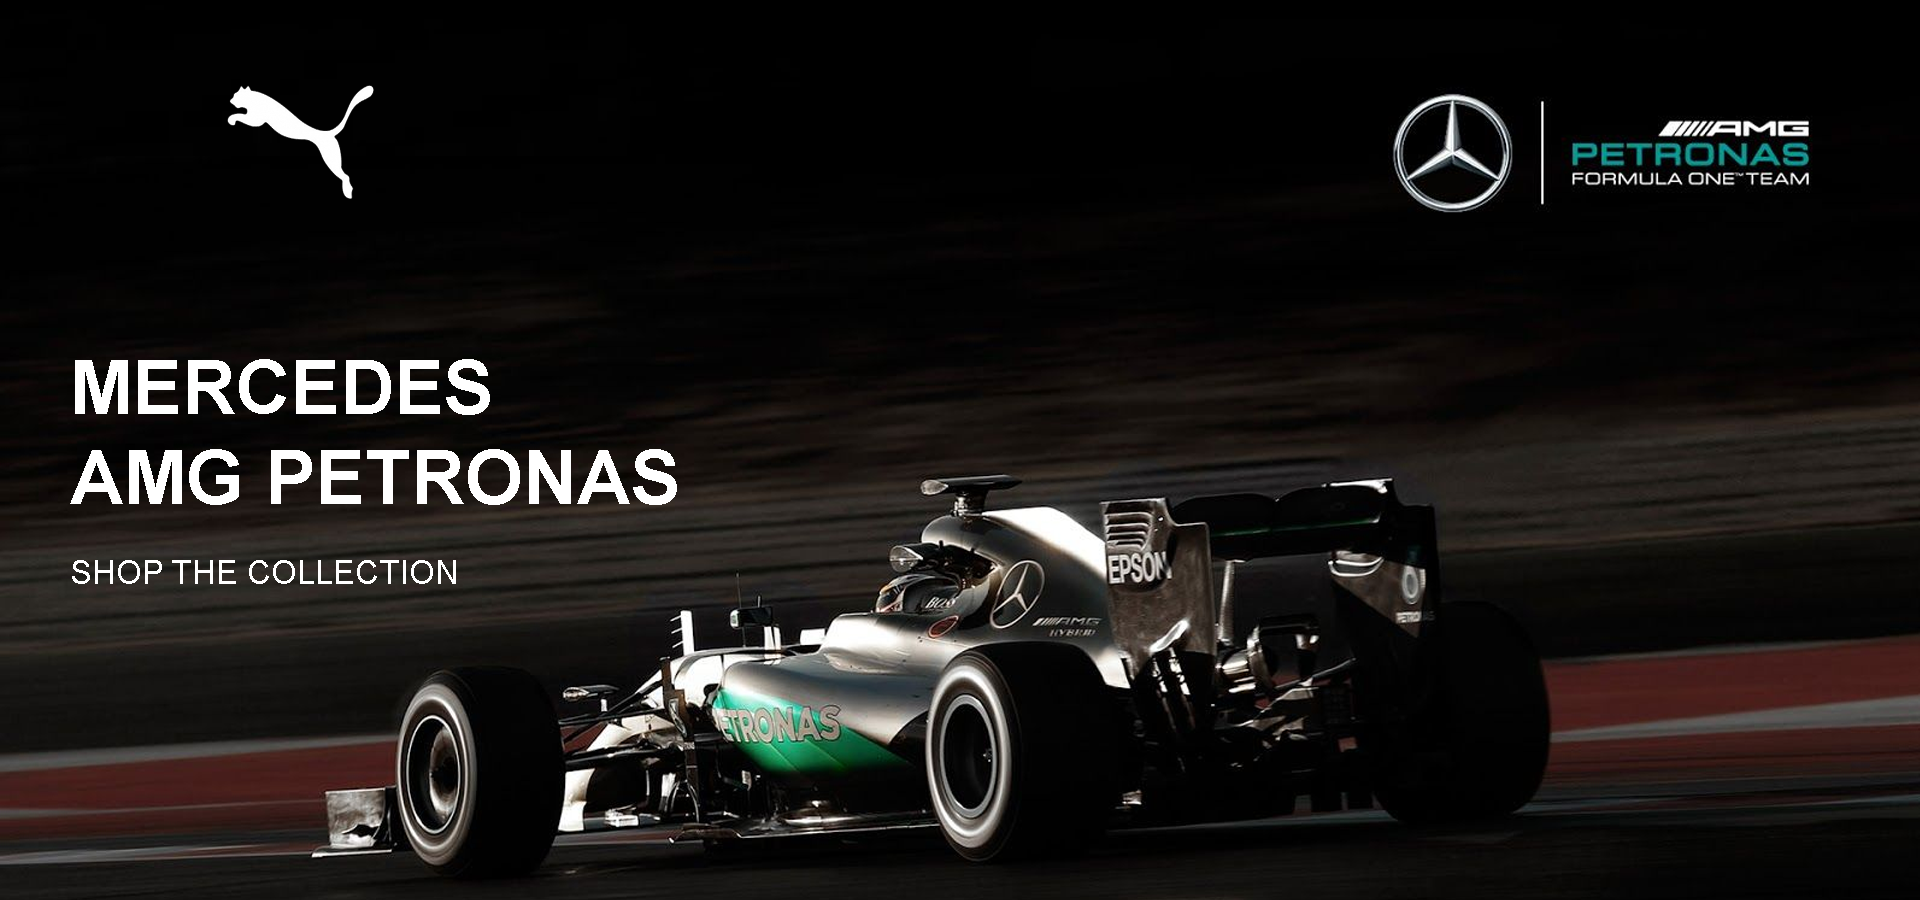 Shop Puma Mercedes AMG Petronas Collection